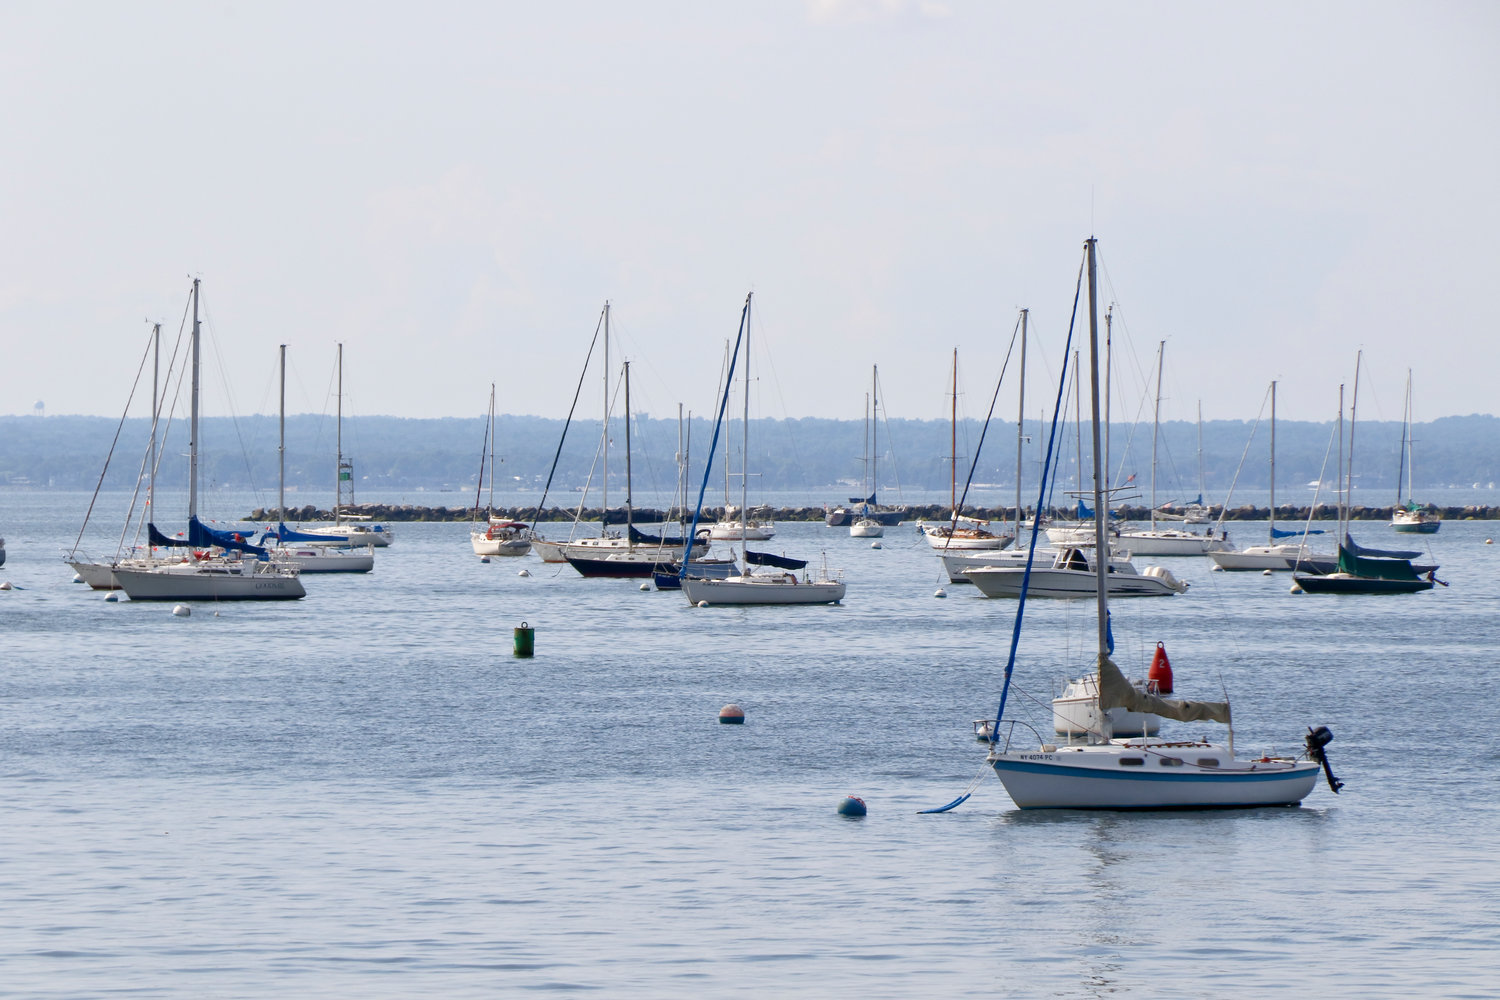 Countless boaters could be spotted enjoying the Long Island Sound through the season.